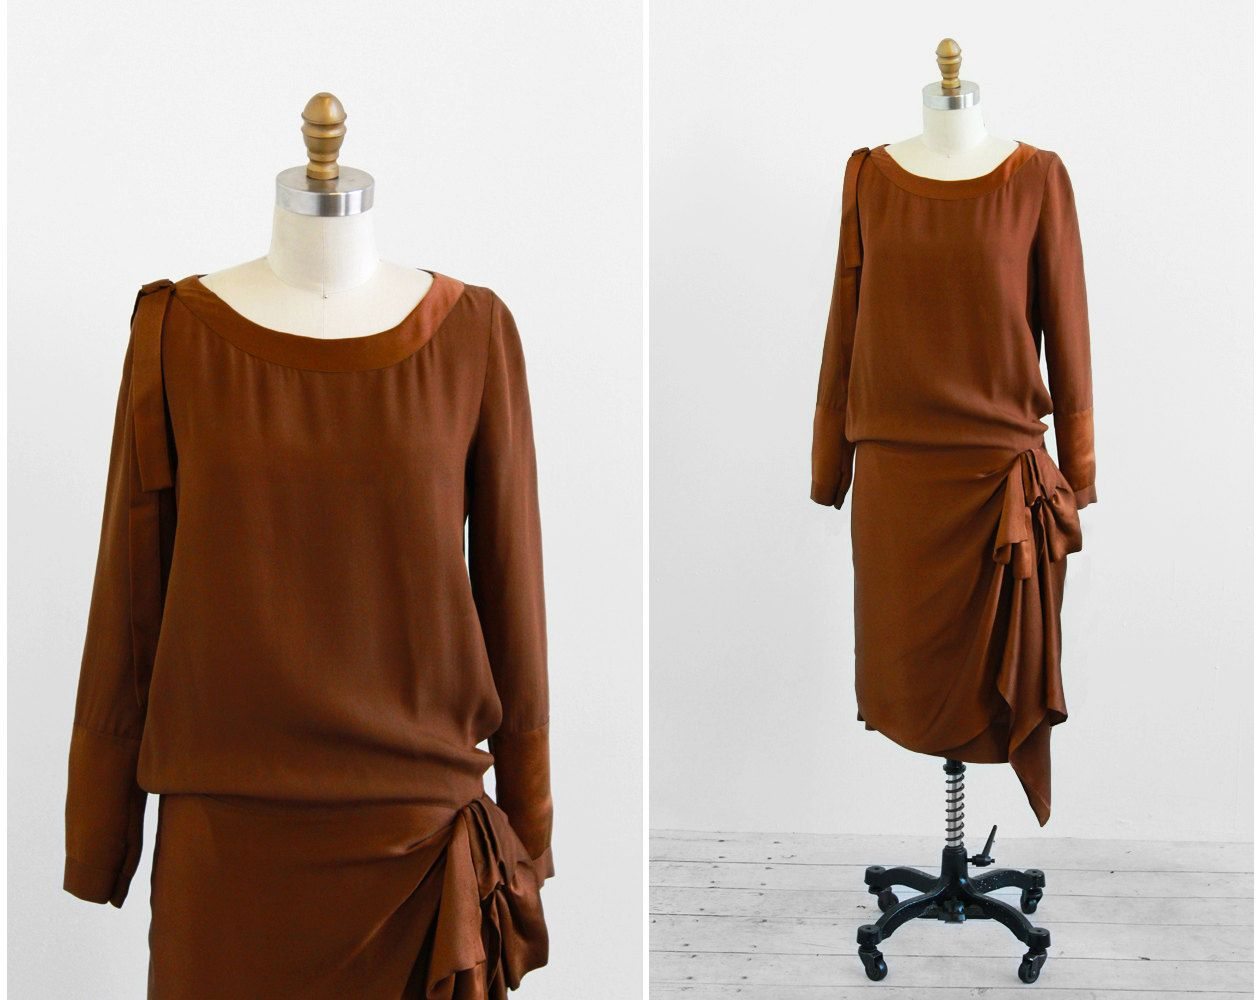 R E S E R V E D Vintage 1920s Dress 20s Dress Brown Silk Gatsby Flapper Dress With Darling Bow 1920s Dress 20s Dresses Vintage Dresses [ 1000 x 1260 Pixel ]